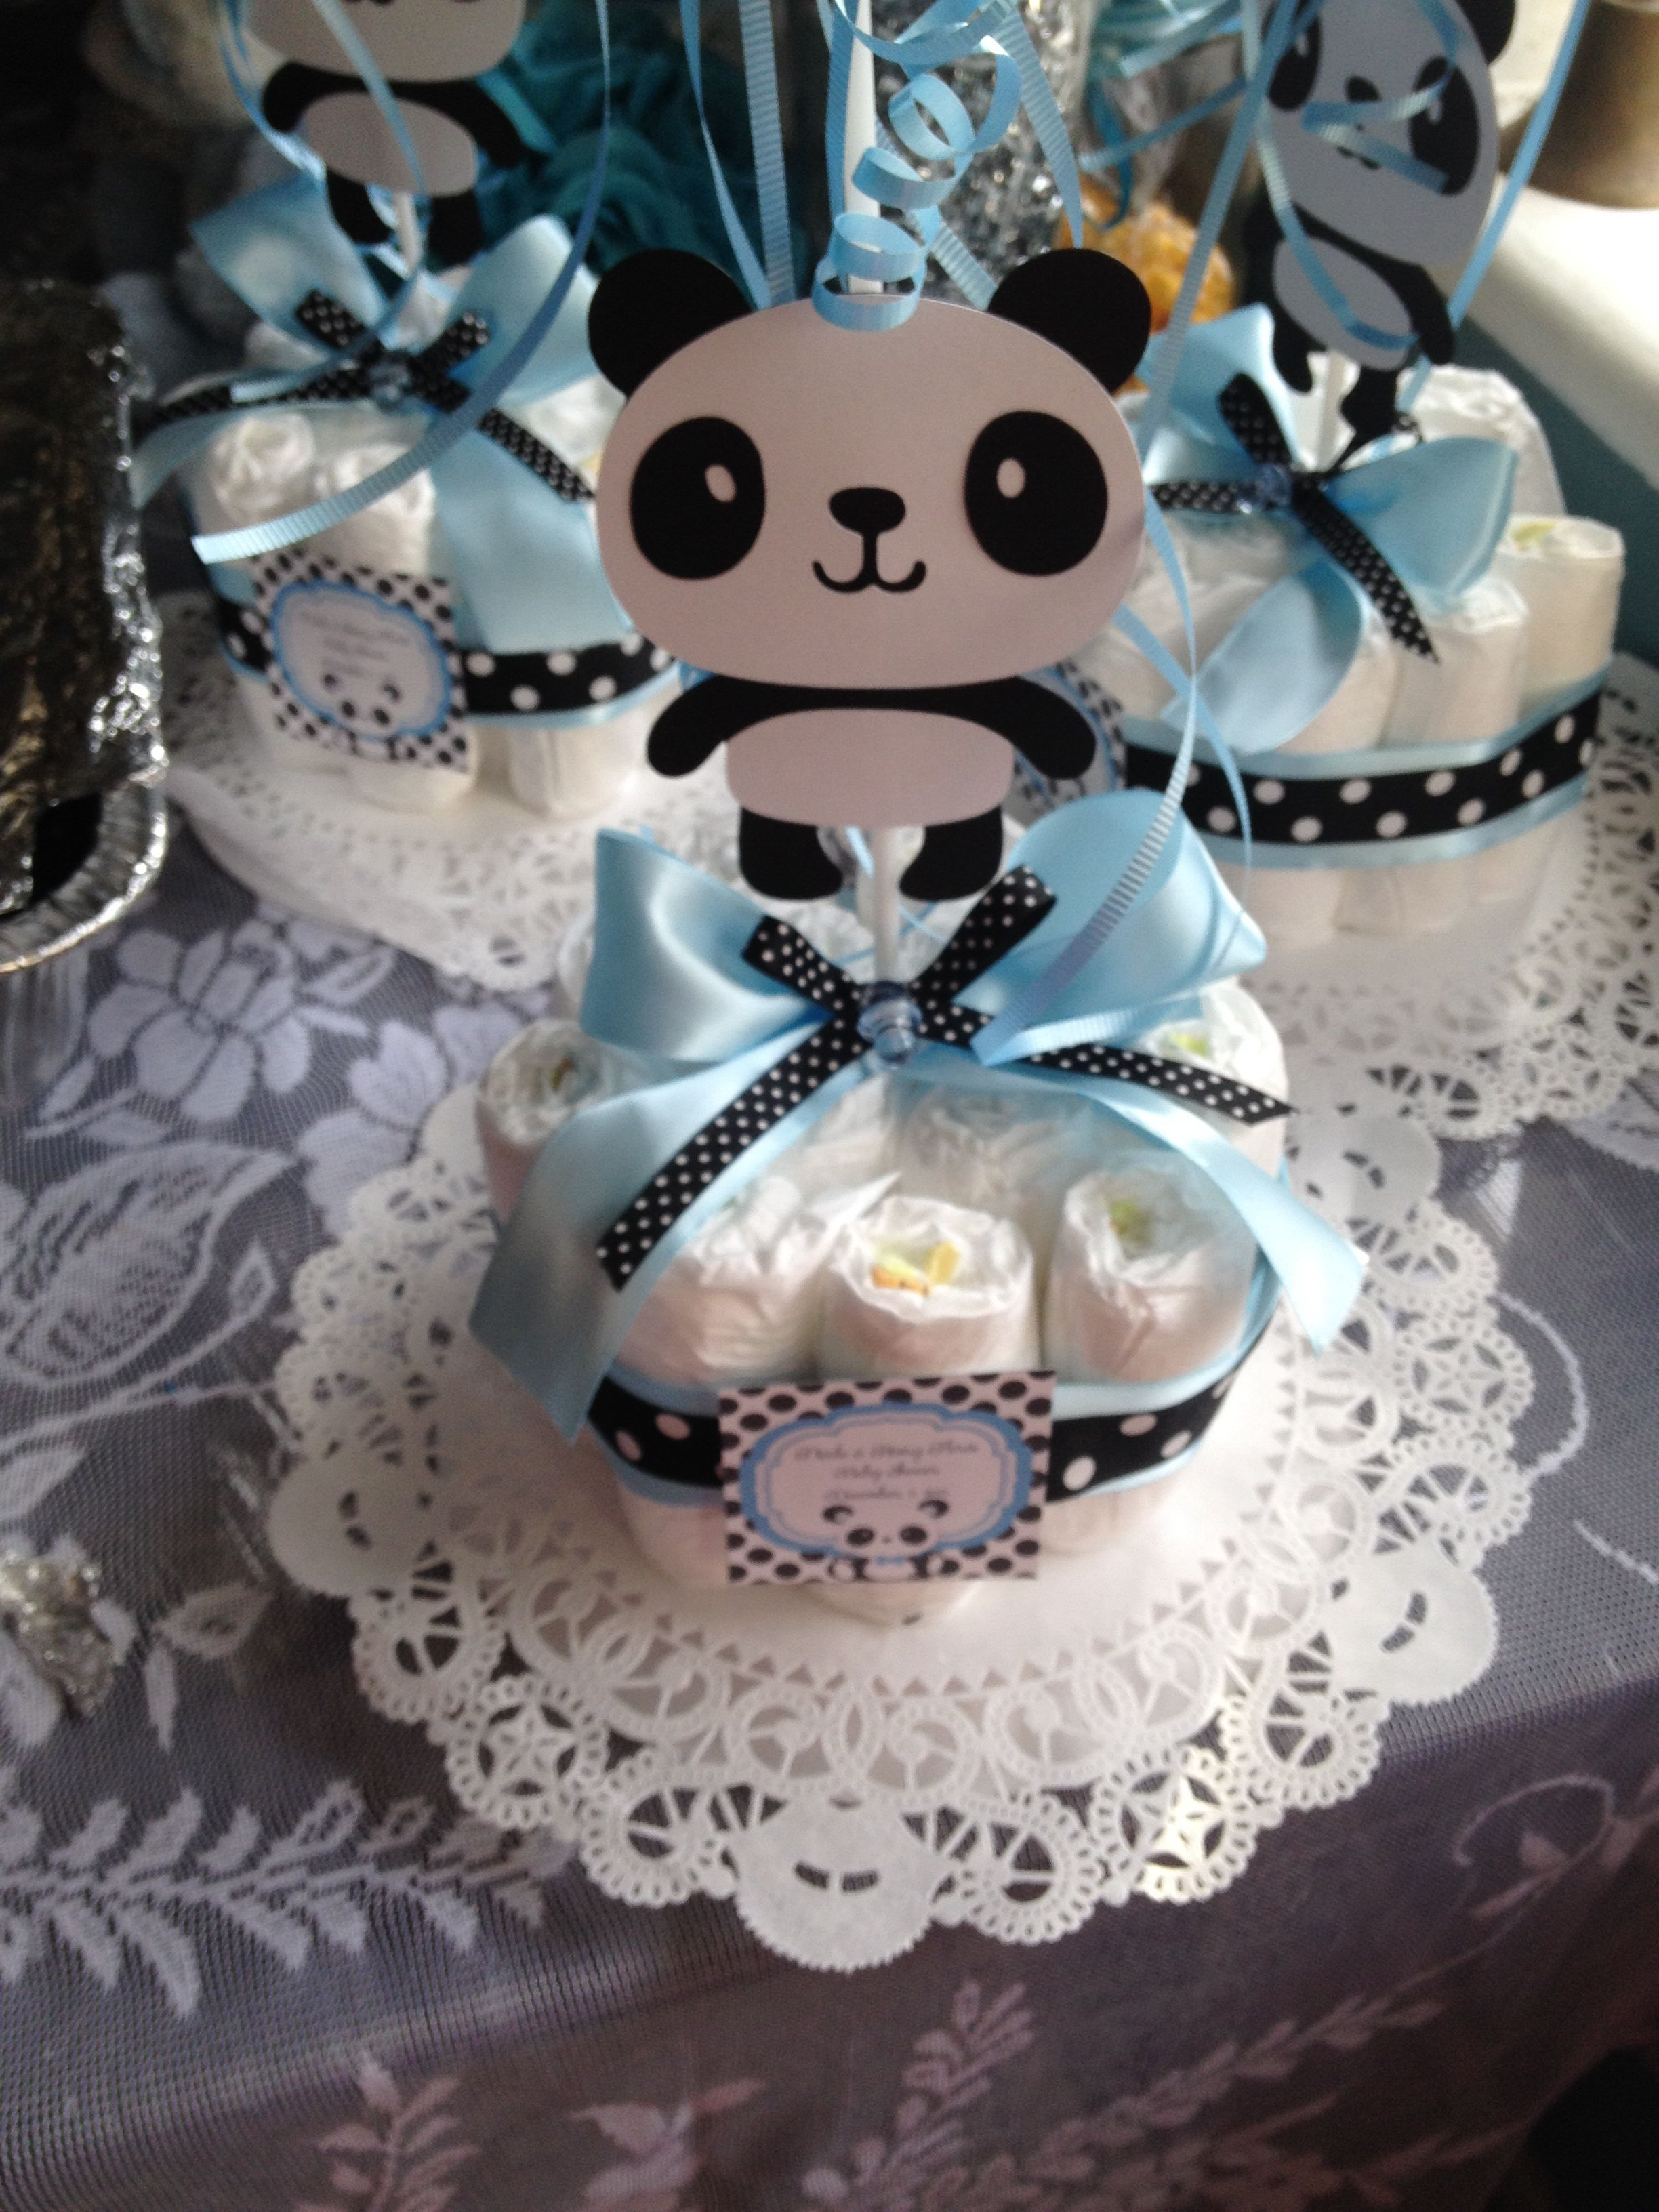 Panda Center Pieces For Baby Shower With Images Panda Baby